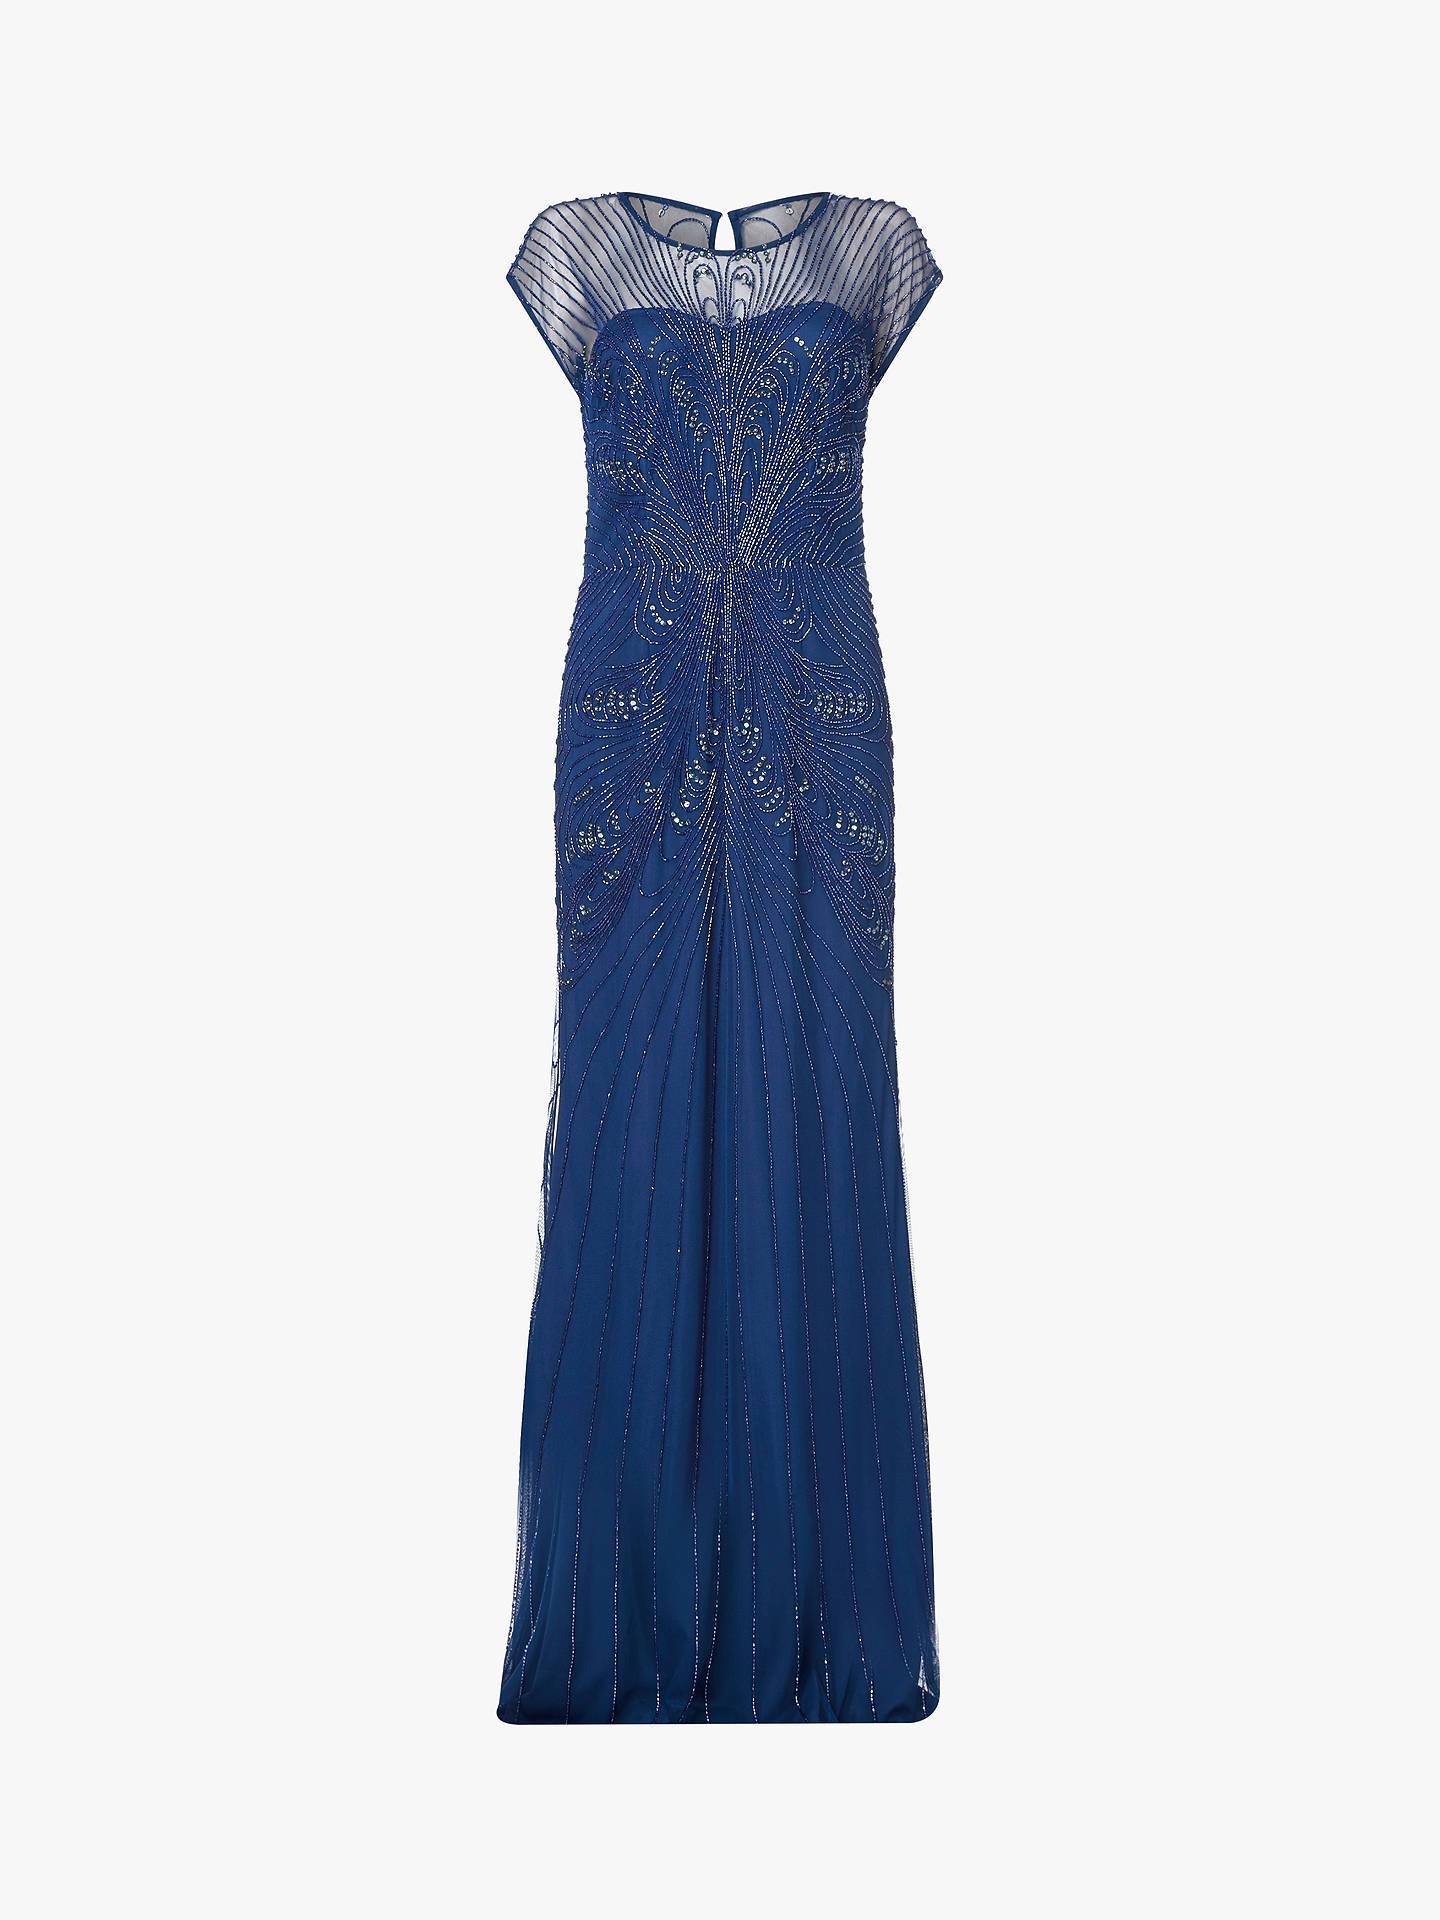 BuyAdrianna Papell Beaded Cap Sleeve Maxi Dress, Deep Blue, 8 Online at johnlewis.com